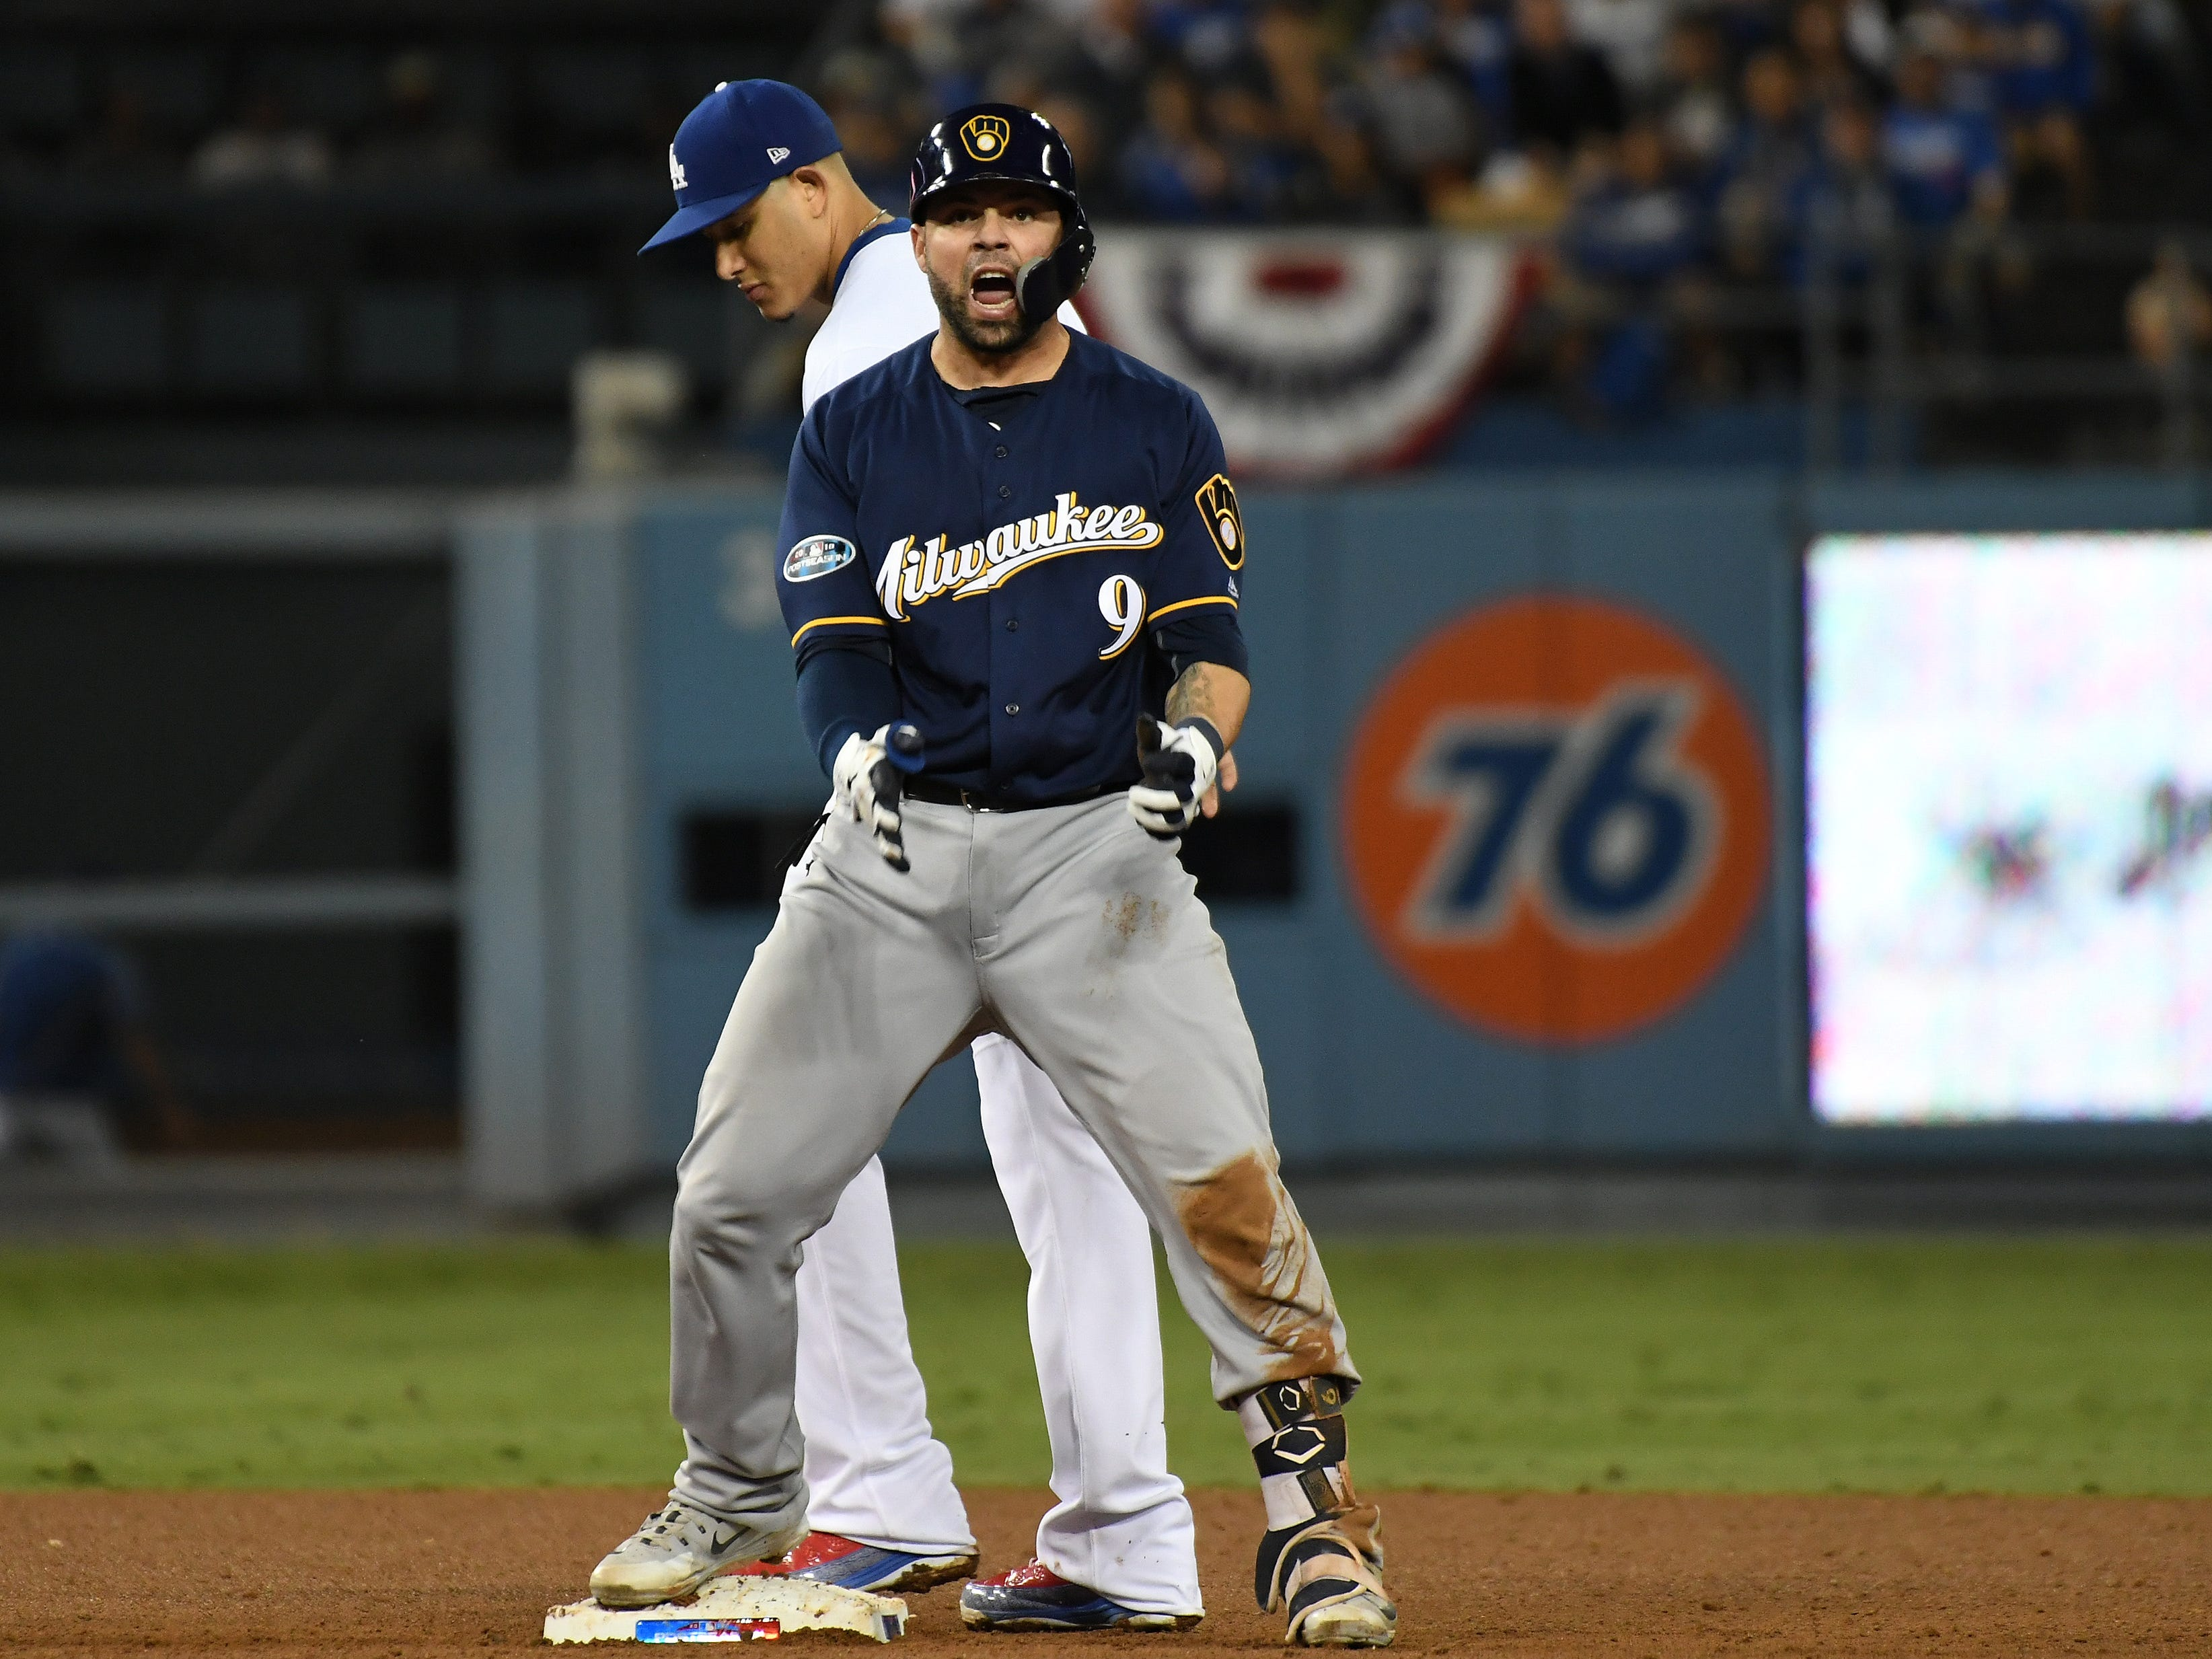 NLCS Game 4: Brewers catcher Manny Pina doubles in the seventh inning.